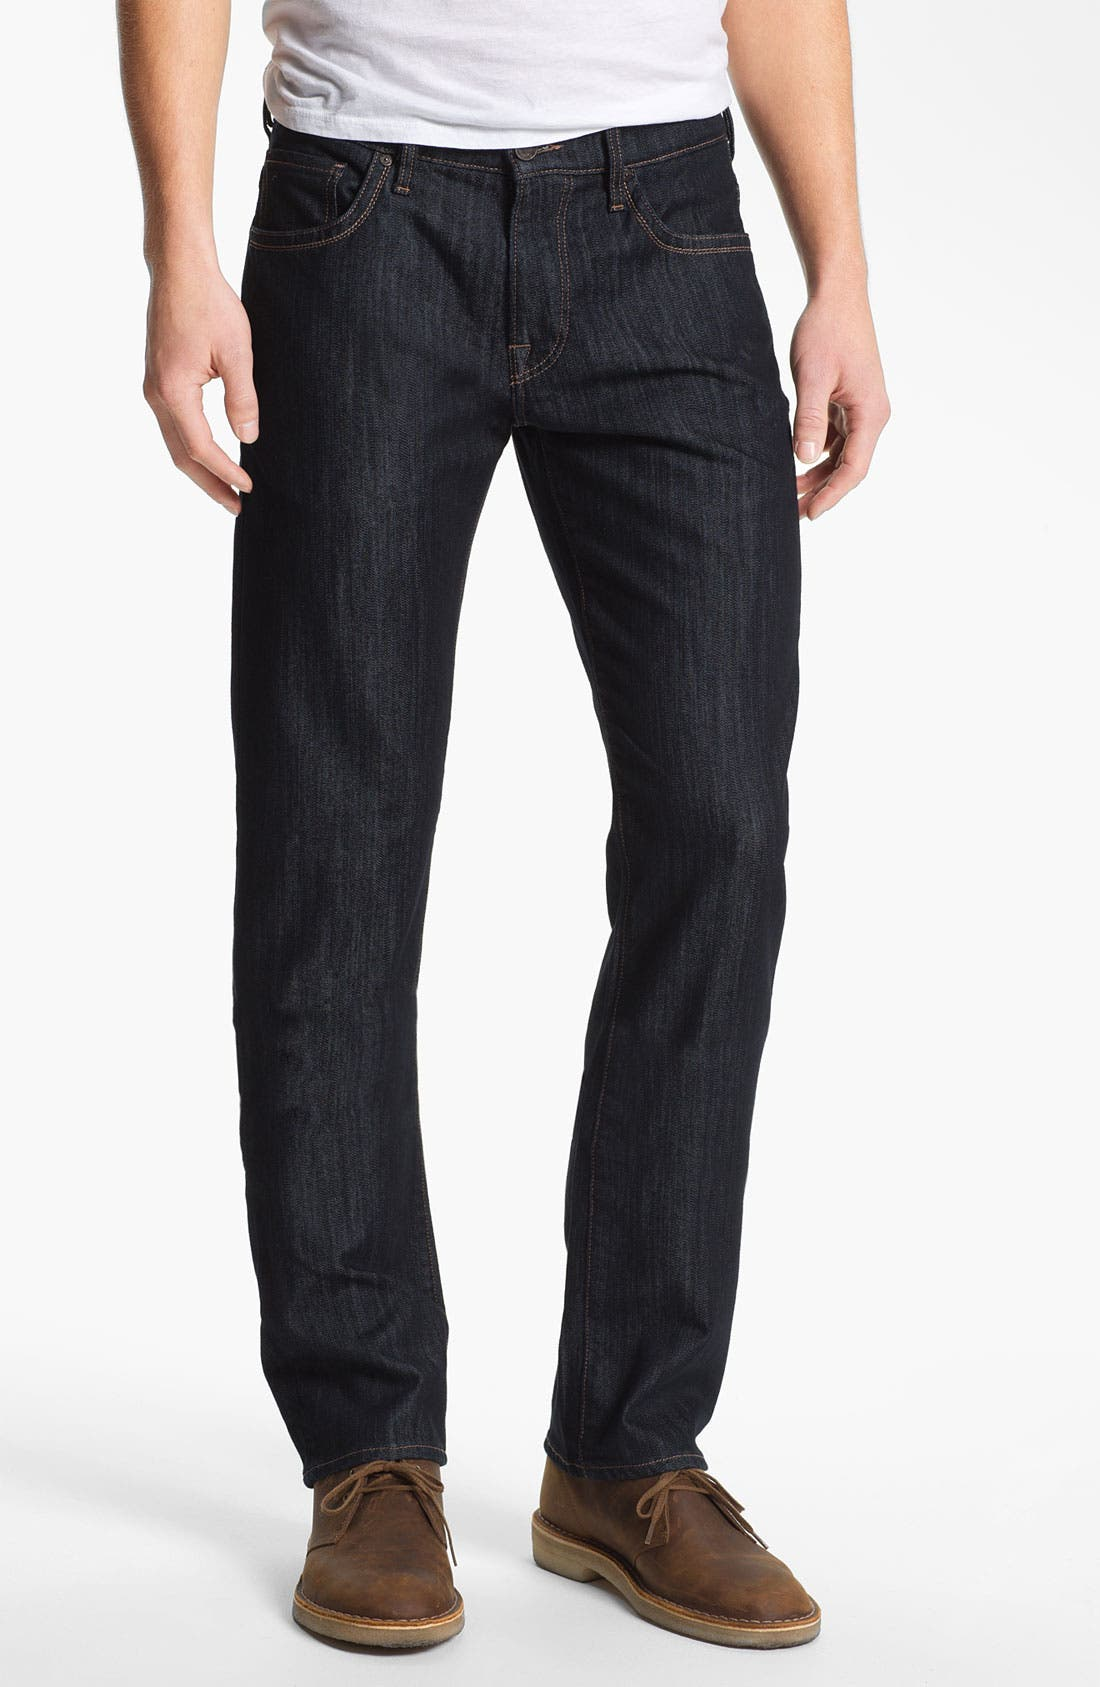 34 Heritage 'Courage' Straight Leg Jeans (Rinse Mercerized) (Online Only)